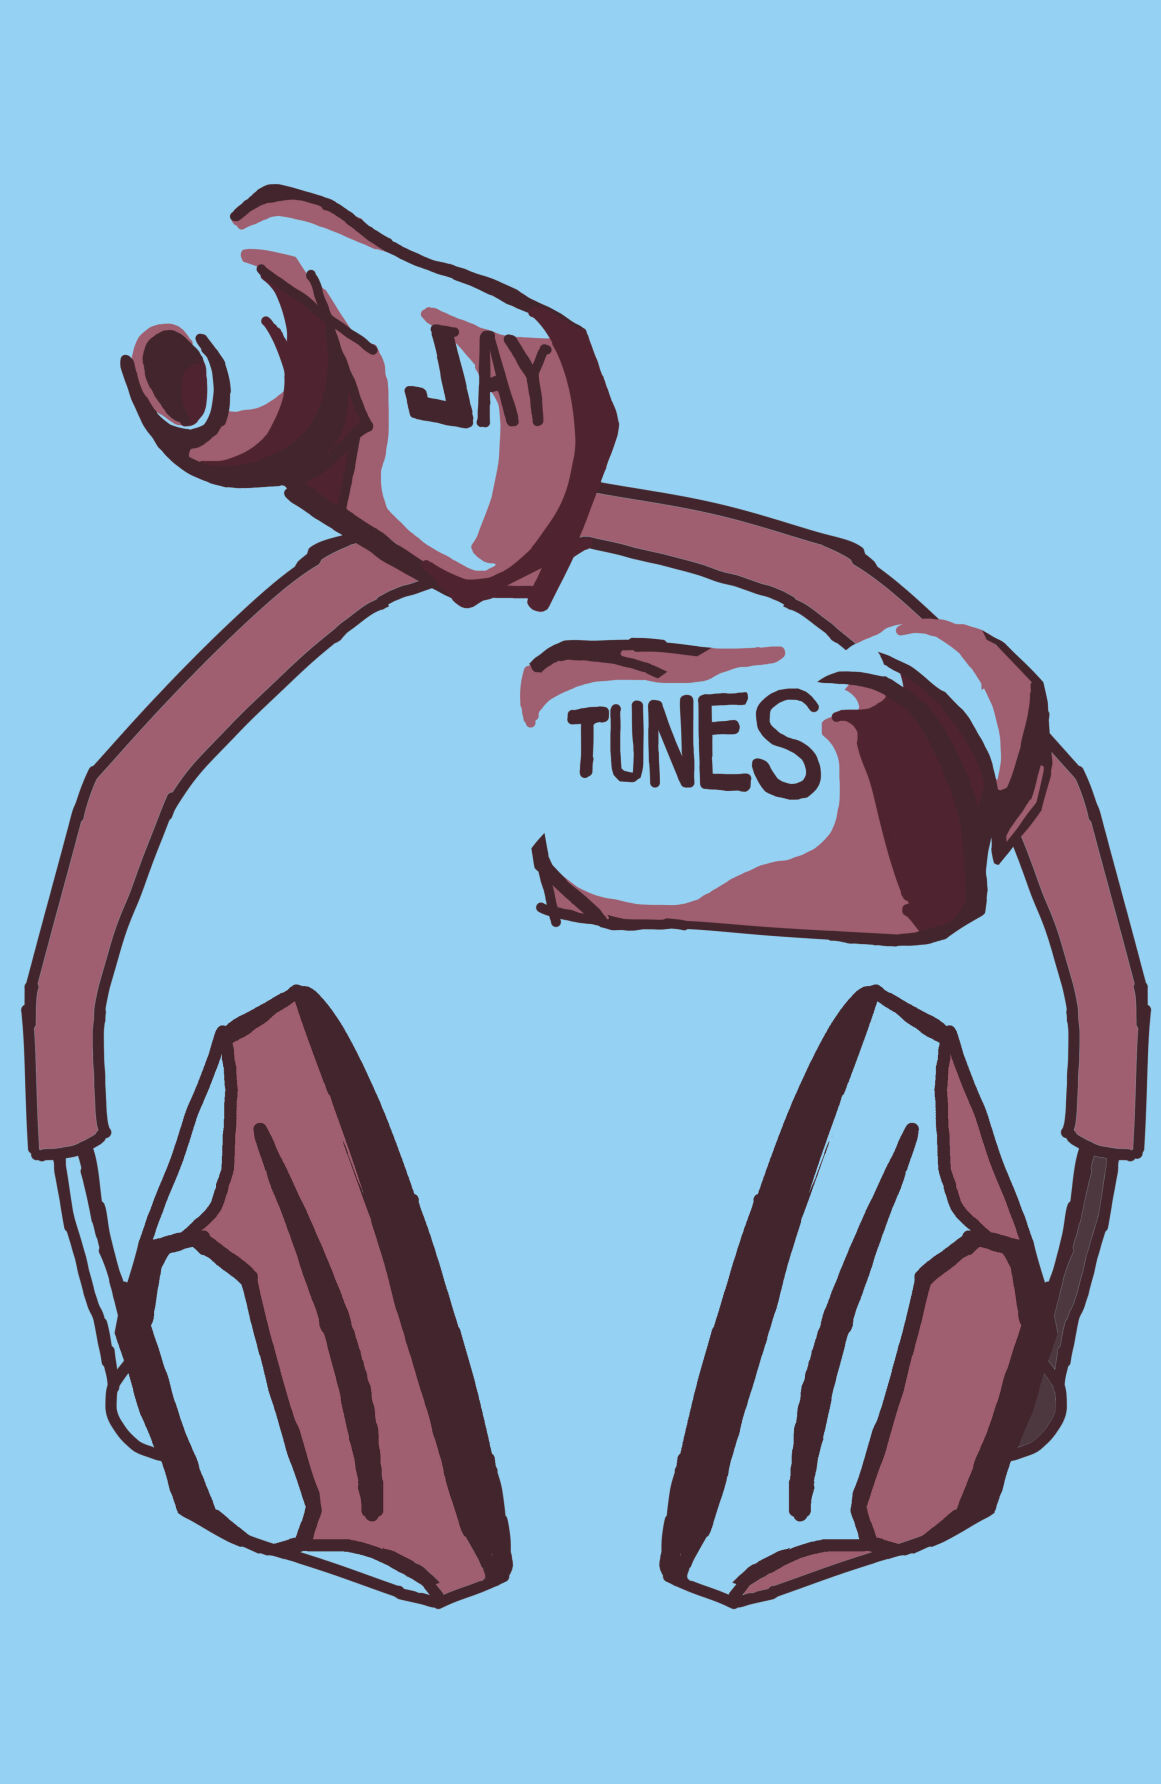 What music genres do CU students listen to?